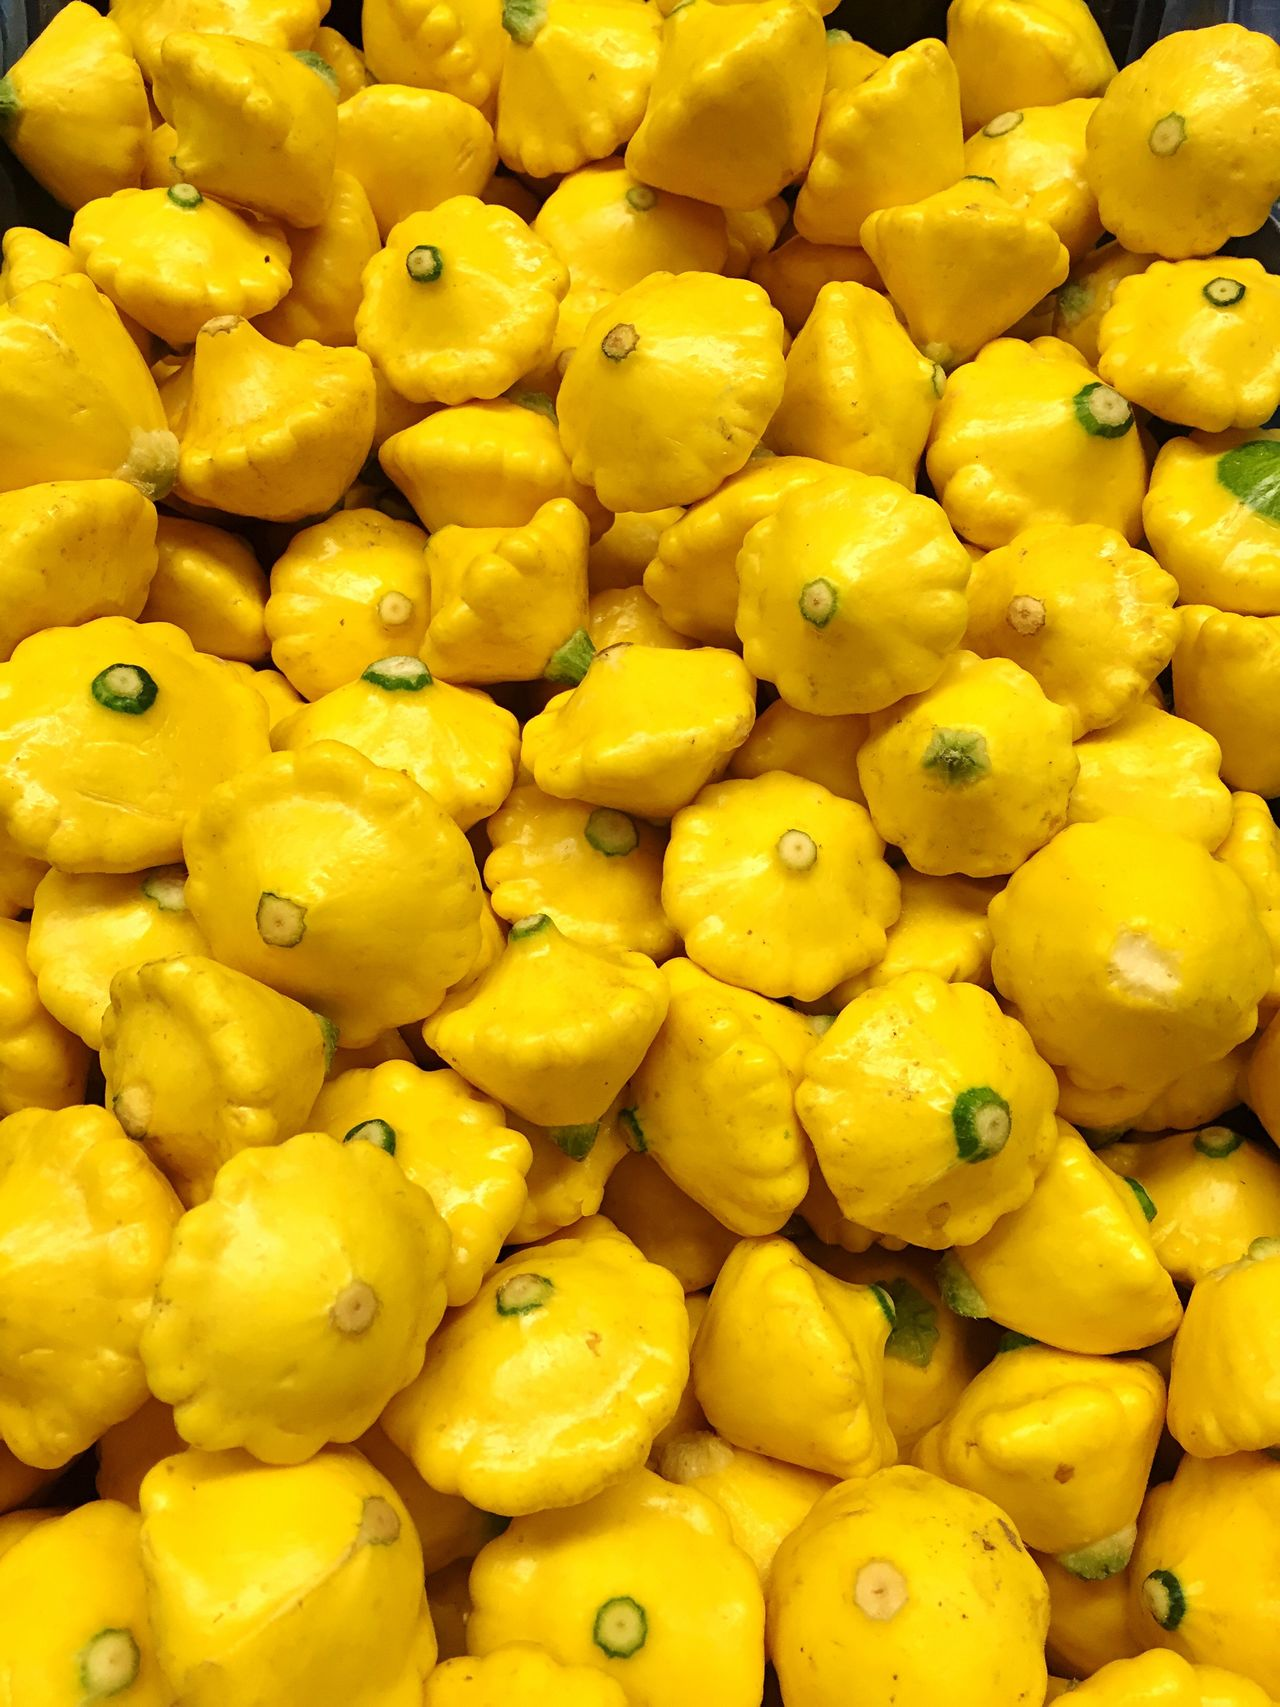 Pattypan Yellow Freshness Healthy Eating Food Market Vegetables Cooking At Home Whatsfordinner Ingredient Abundance No People Yummy